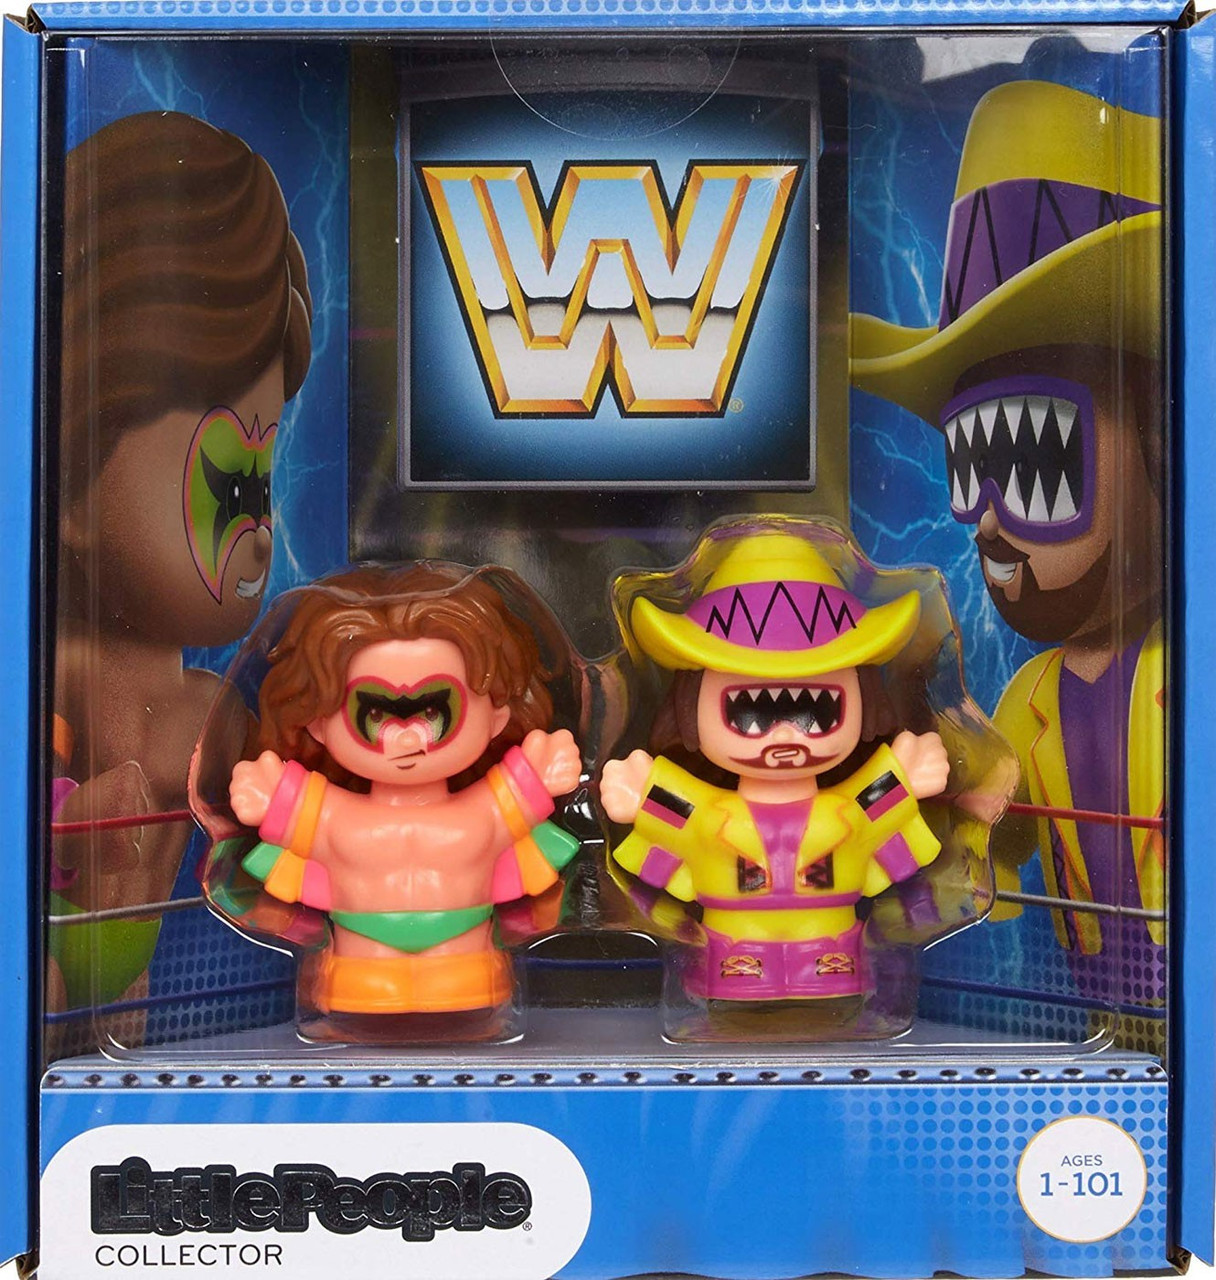 WWE WRESTLING SQUISH UMS SINGLE ULTIMATE WARRIOR LOOSE SLOW RISE WITH PACKAGING